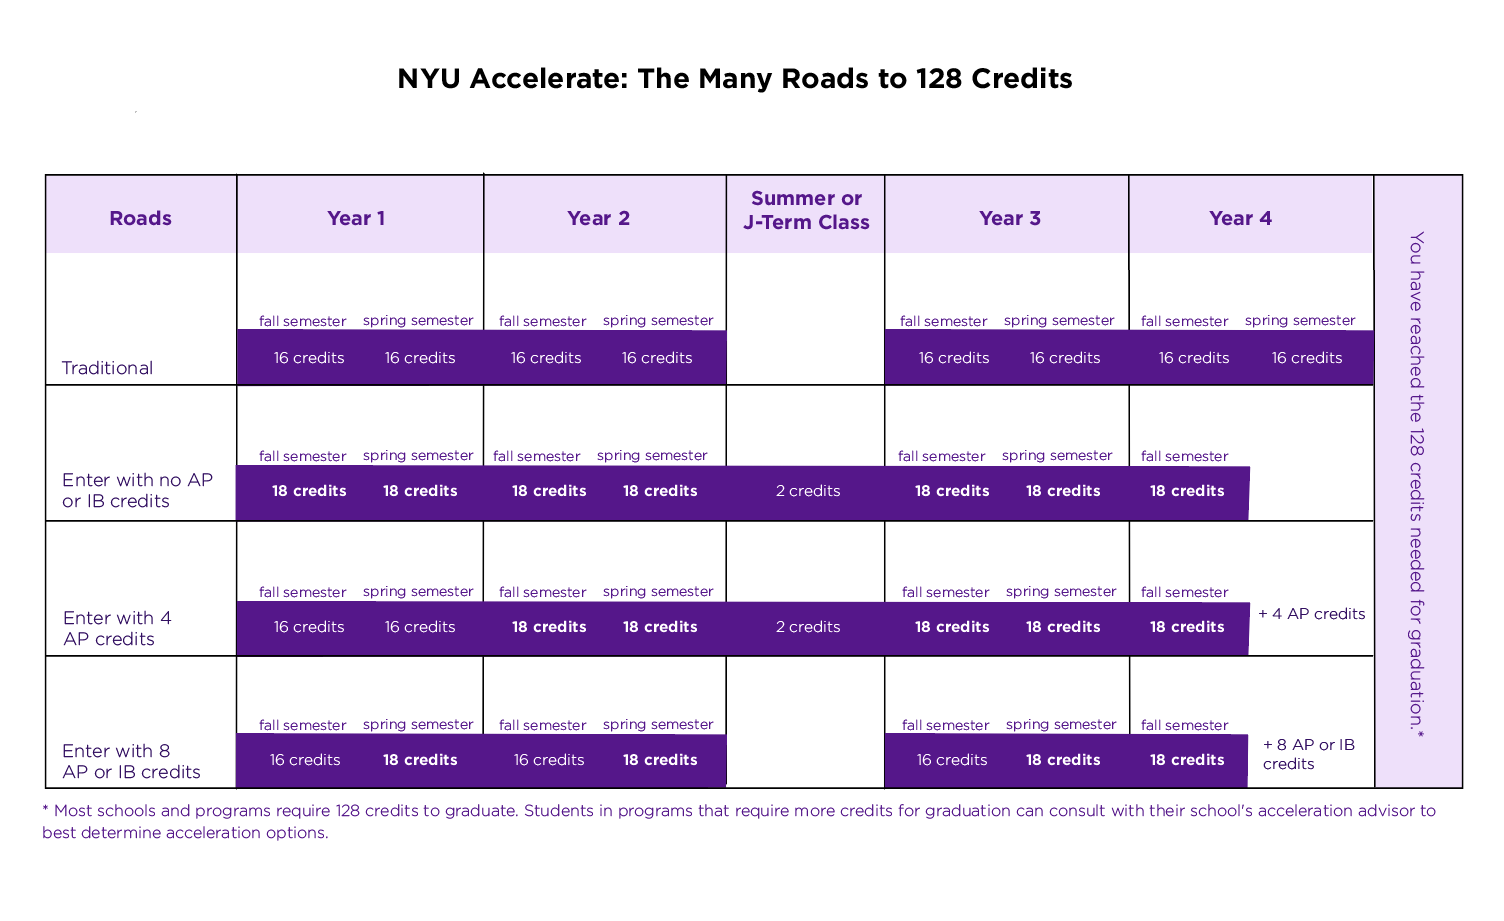 nyu business school essays The essay topic for nyu 2015 was: nyu is global, urban, inspired, smart, connected, and bold  all year round at a business school that is consistently ranked.